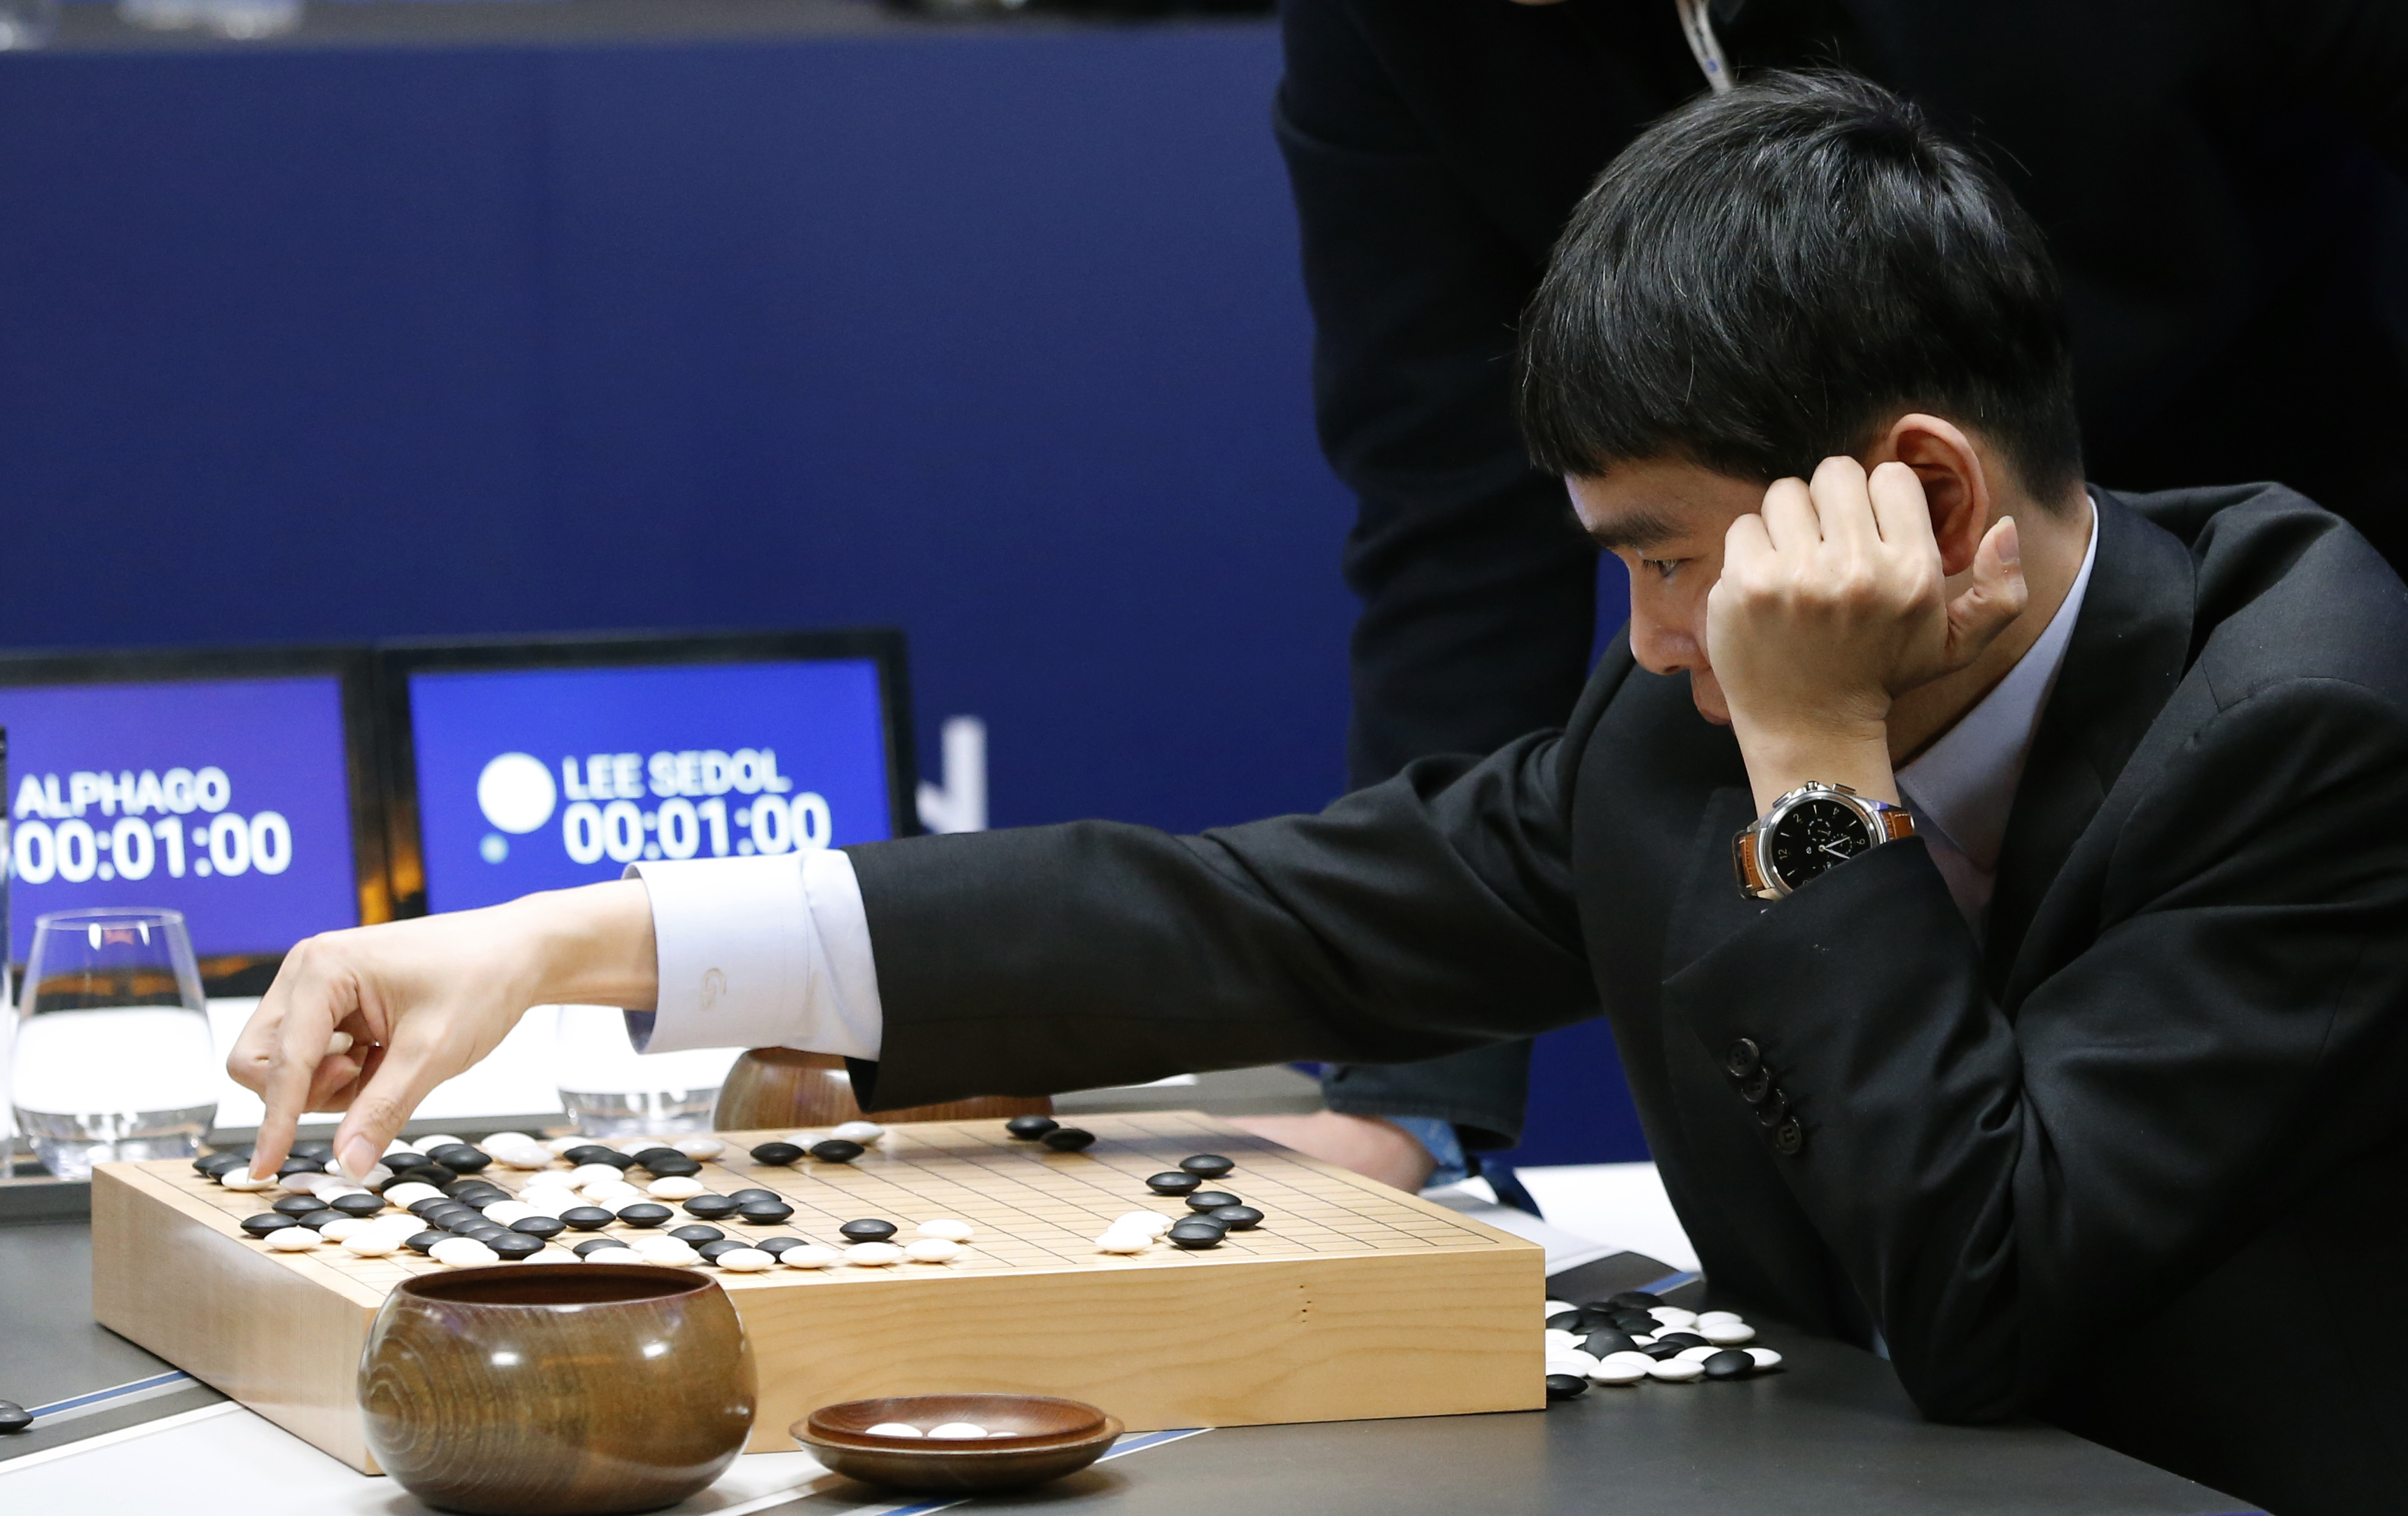 """South Korean professional Go player Lee Sedol reviews the match himself after finishing the second match of the Google DeepMind Challenge Match against Google's artificial intelligence program, AlphaGo in Seoul, South Korea, Thursday, March 10, 2016. The human Go champion said he was left """"speechless"""" after his second straight loss to Google's Go-playing machine on Thursday in a highly-anticipated human versus machine face-off. (AP Photo/Lee Jin-man)"""